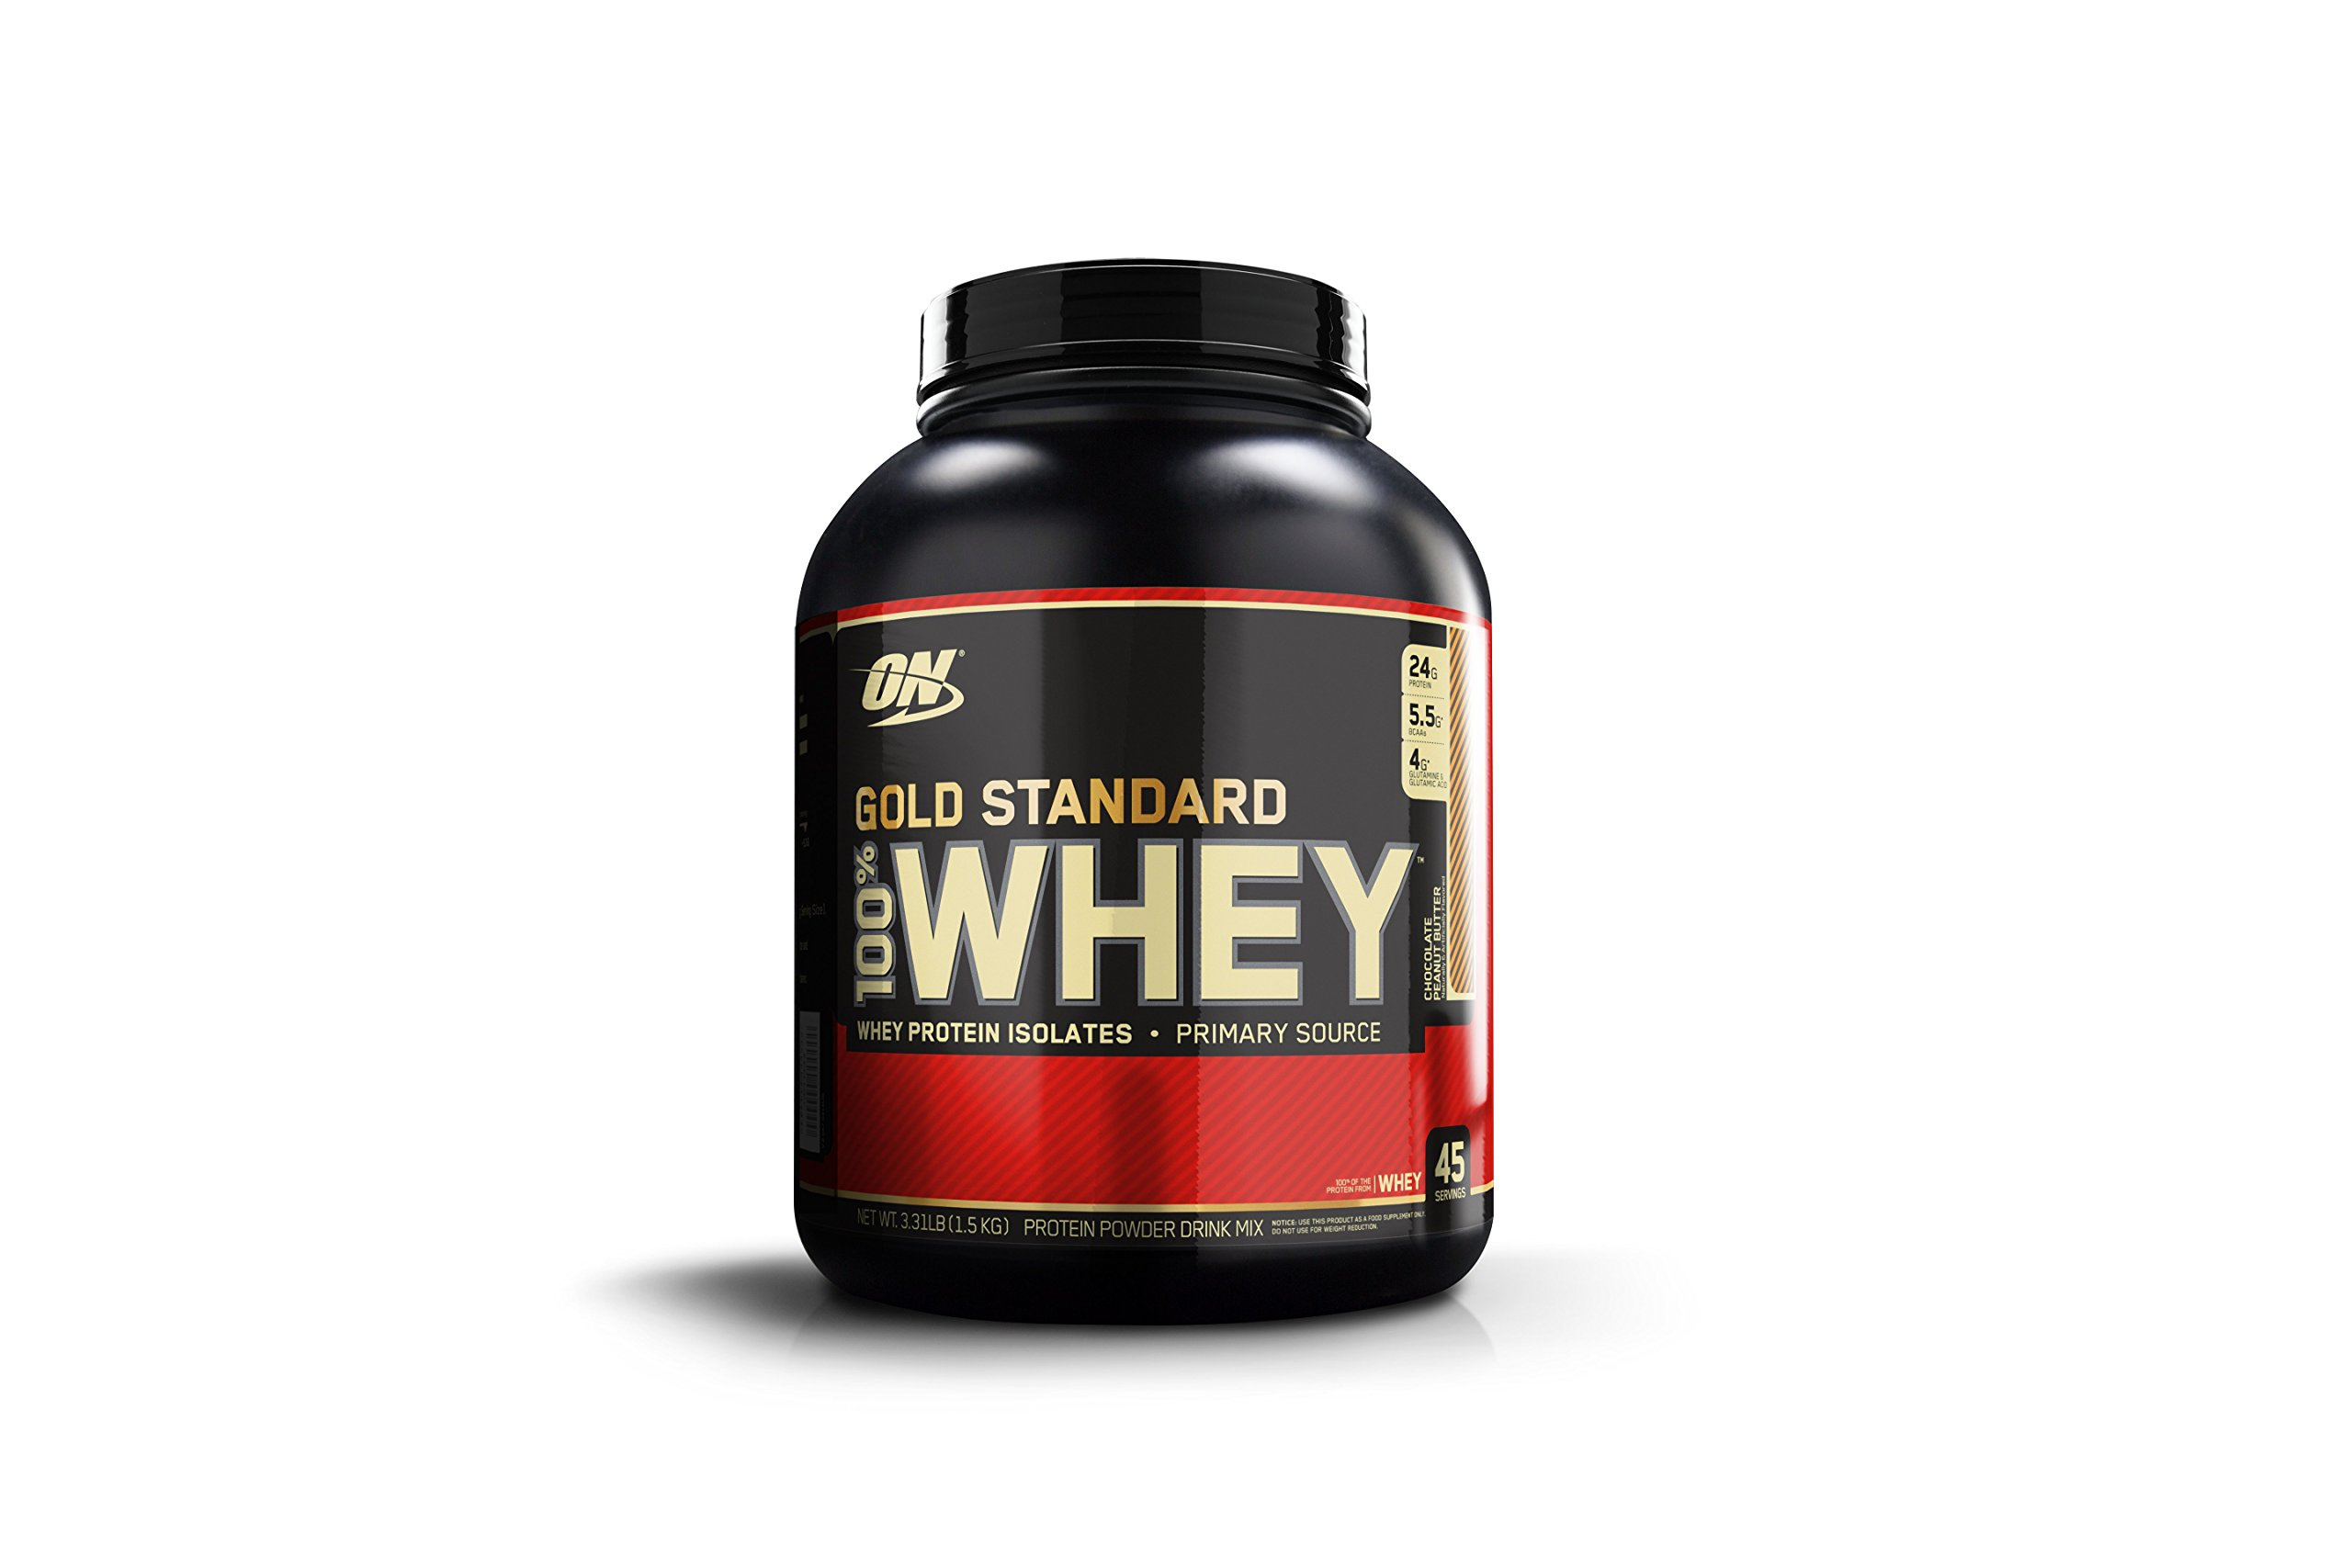 Optimum Nutrition Gold Standard 100% Whey Protein Powder, Chocolate Peanut Butter, 3.31 Pound